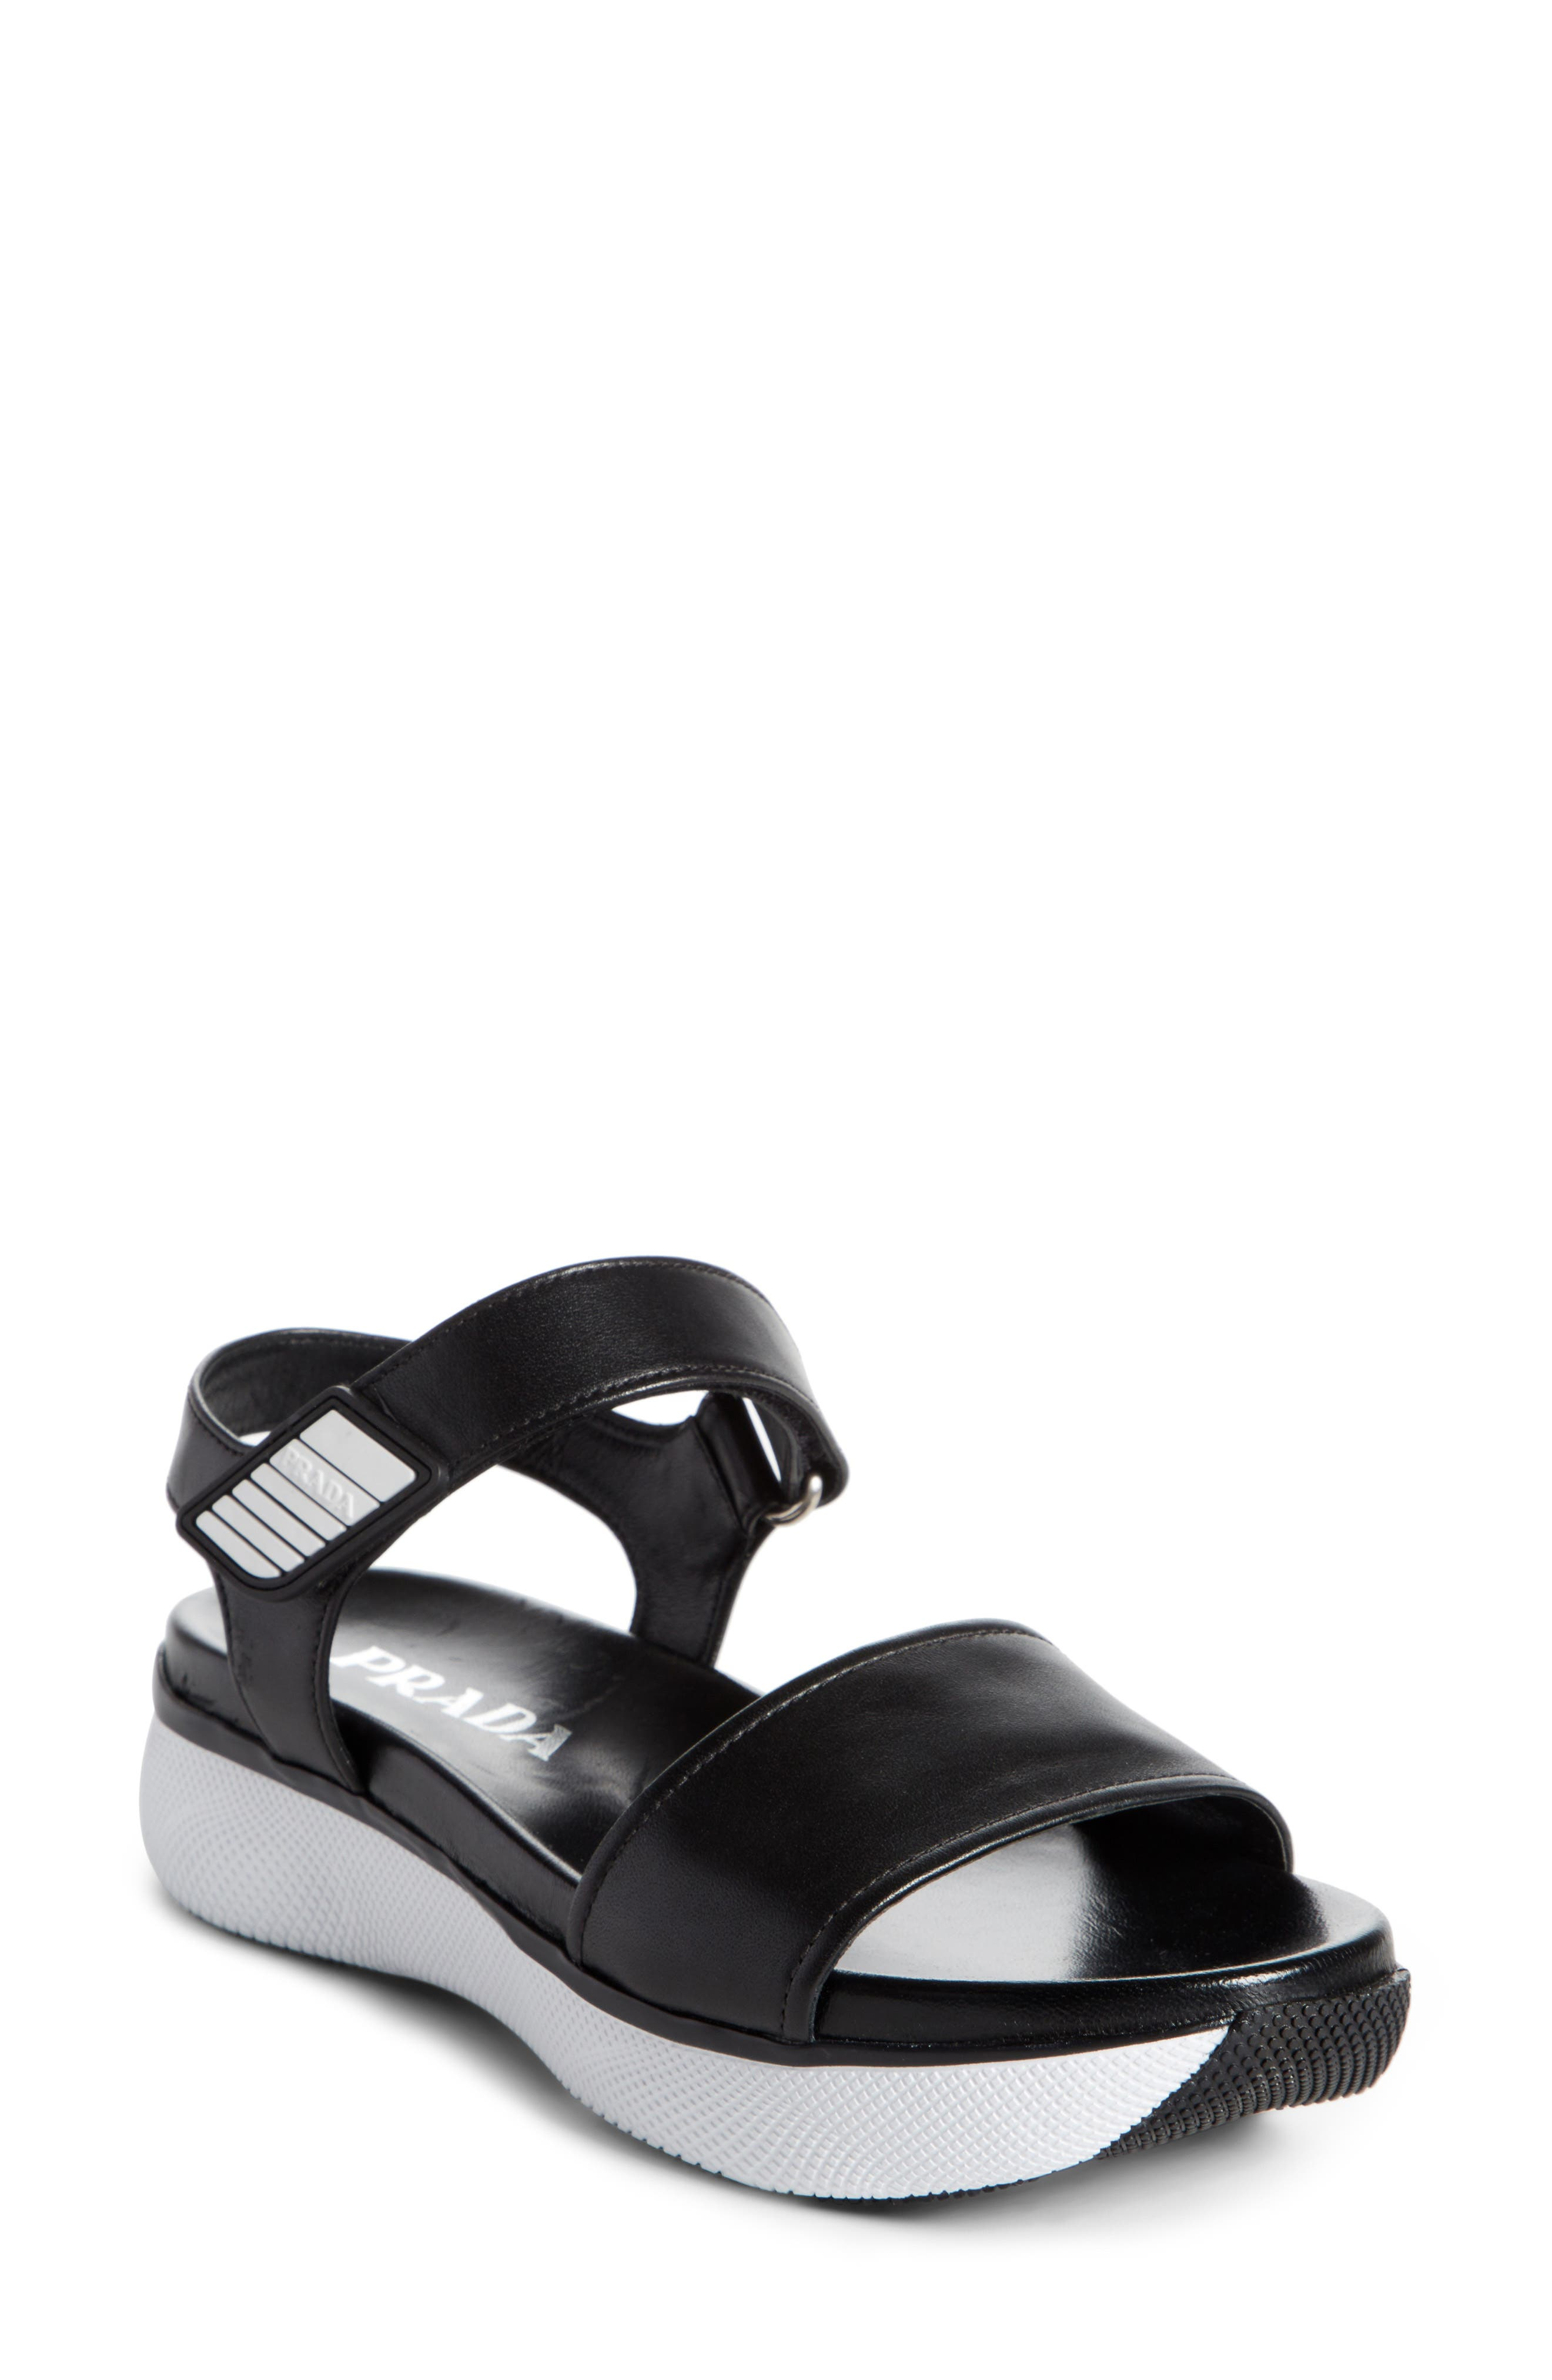 Platform Sandal,                         Main,                         color, 002